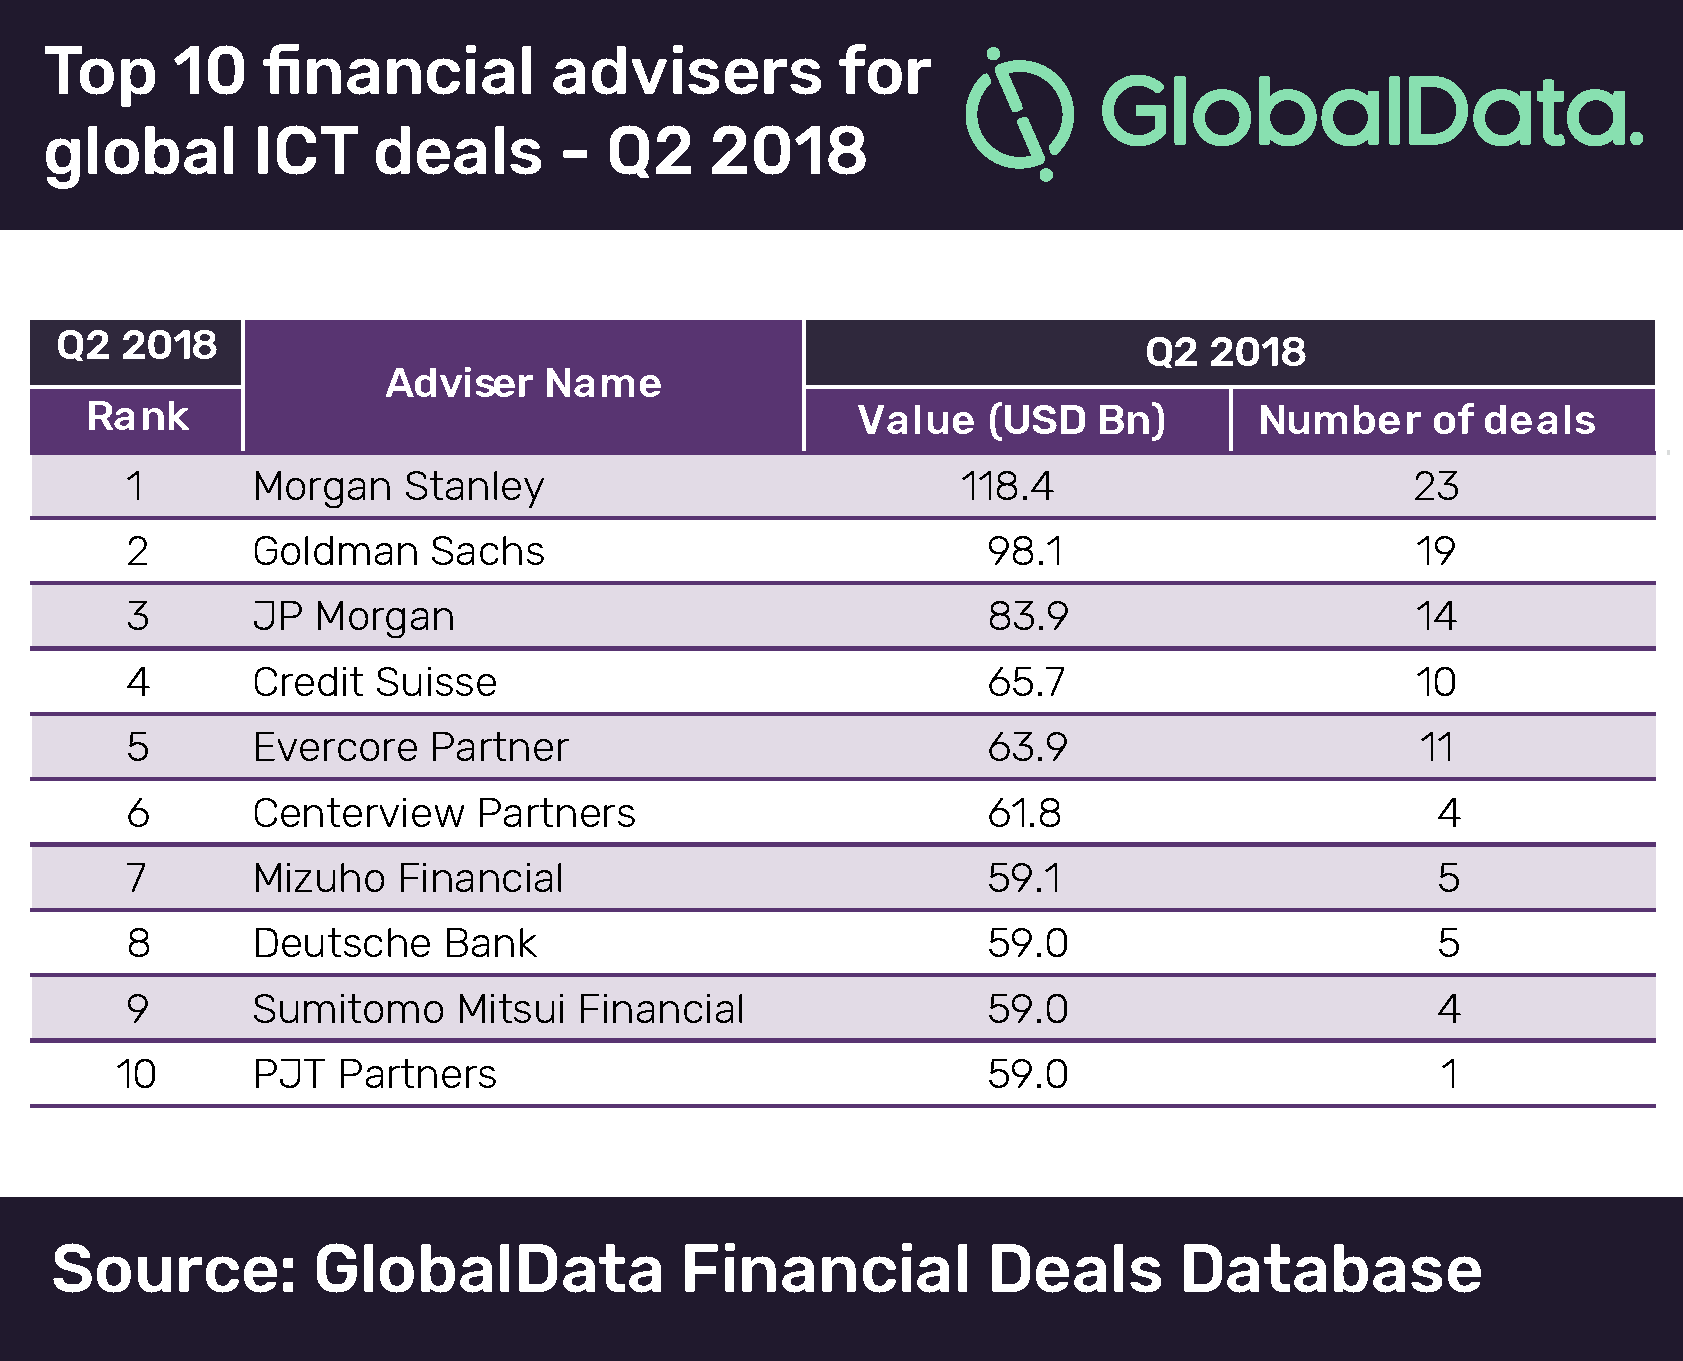 Morgan Stanley Tops M&A Financial Advisers In ICT For Q2 2018